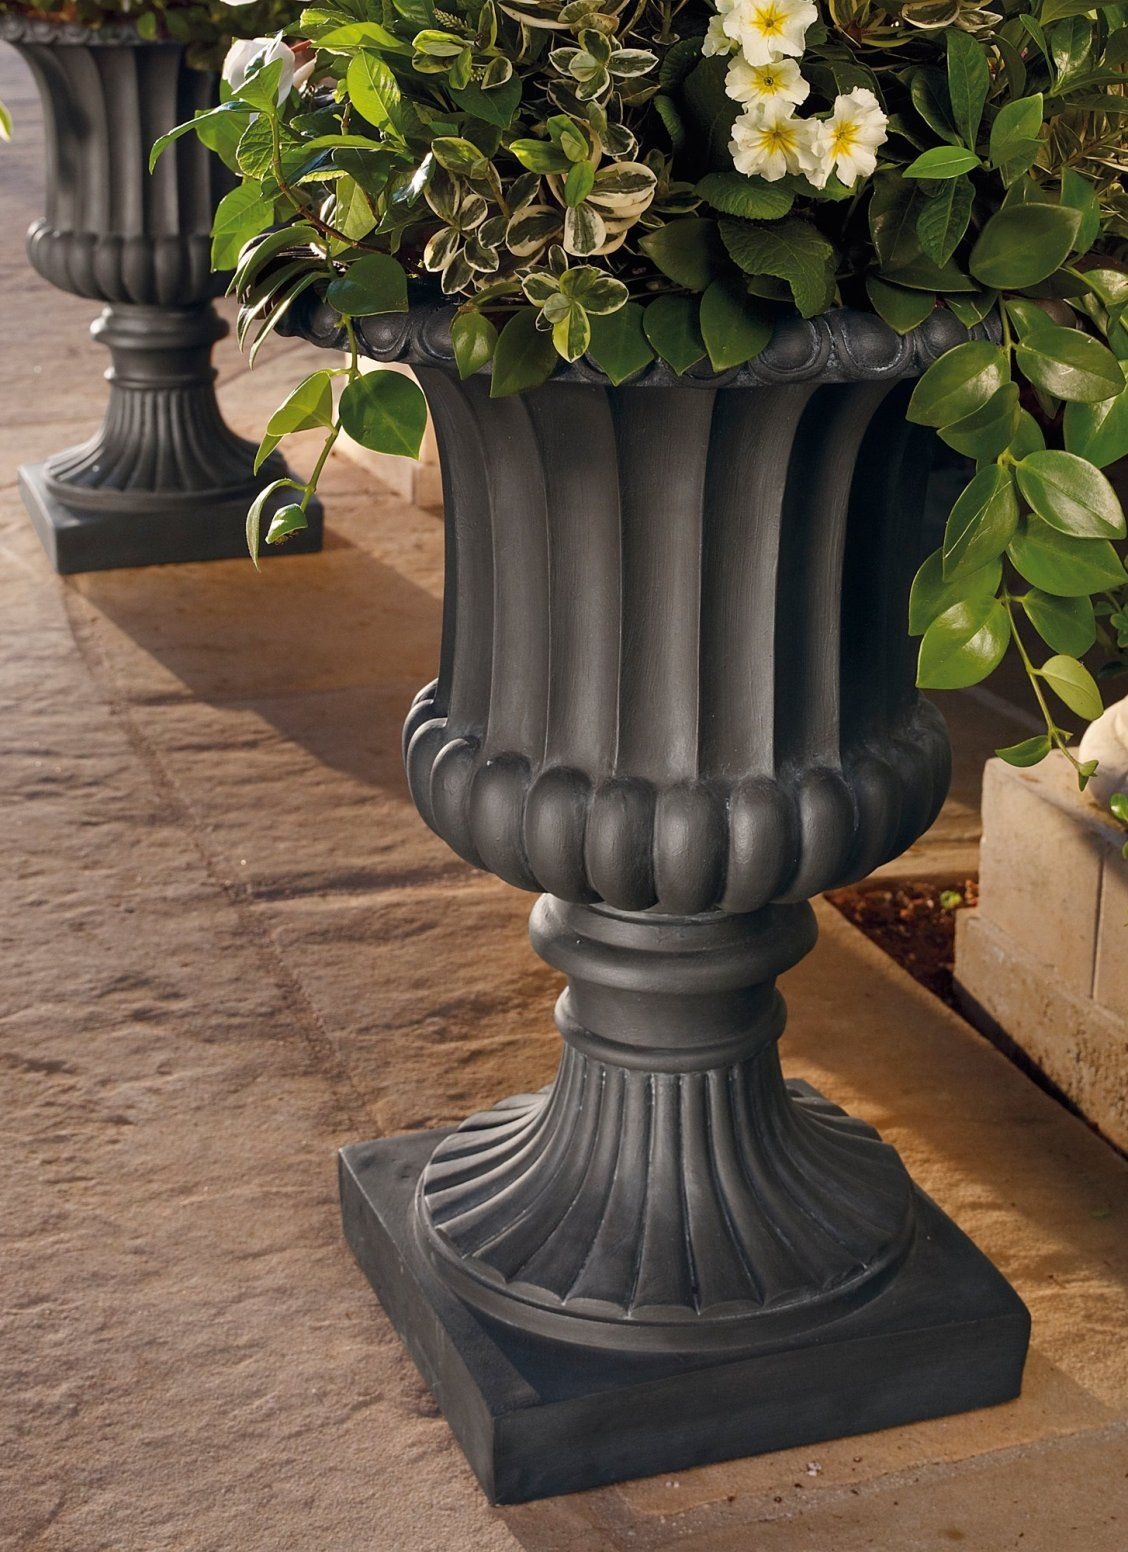 Classical Tuscany Indoor Outdoor Urn Outdoor Urns Tuscan Design Tuscany Decor